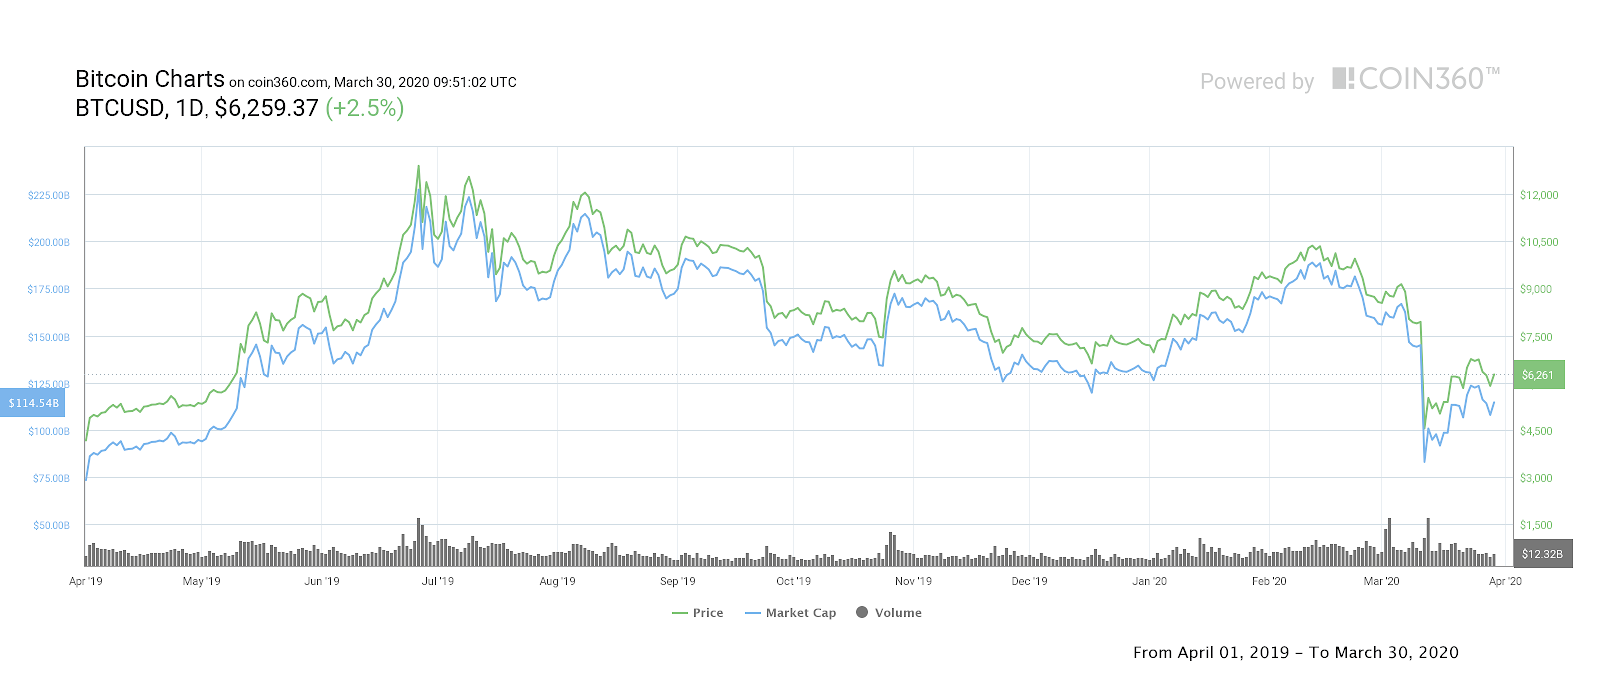 Bitcoin Price 1-year chart showing dip to 70% of highs